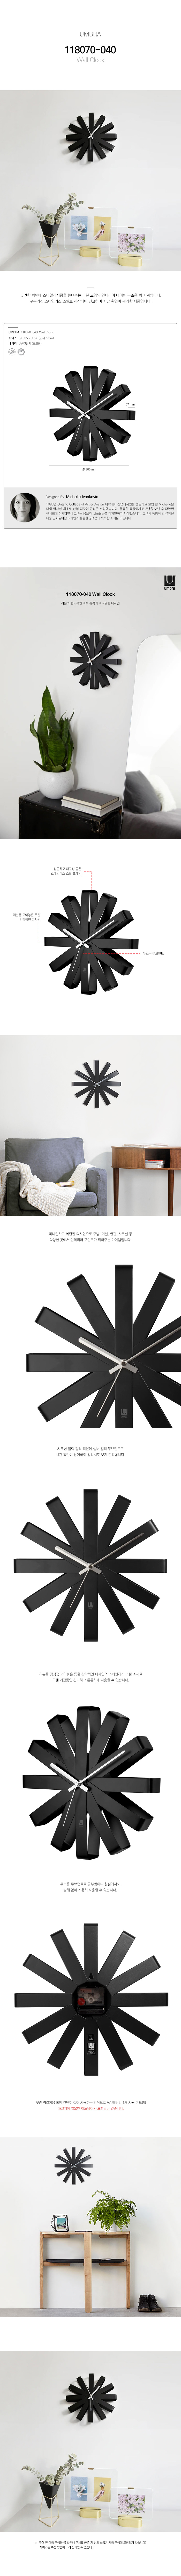 Ribbon-Black_Wall_Clock_180403.jpg